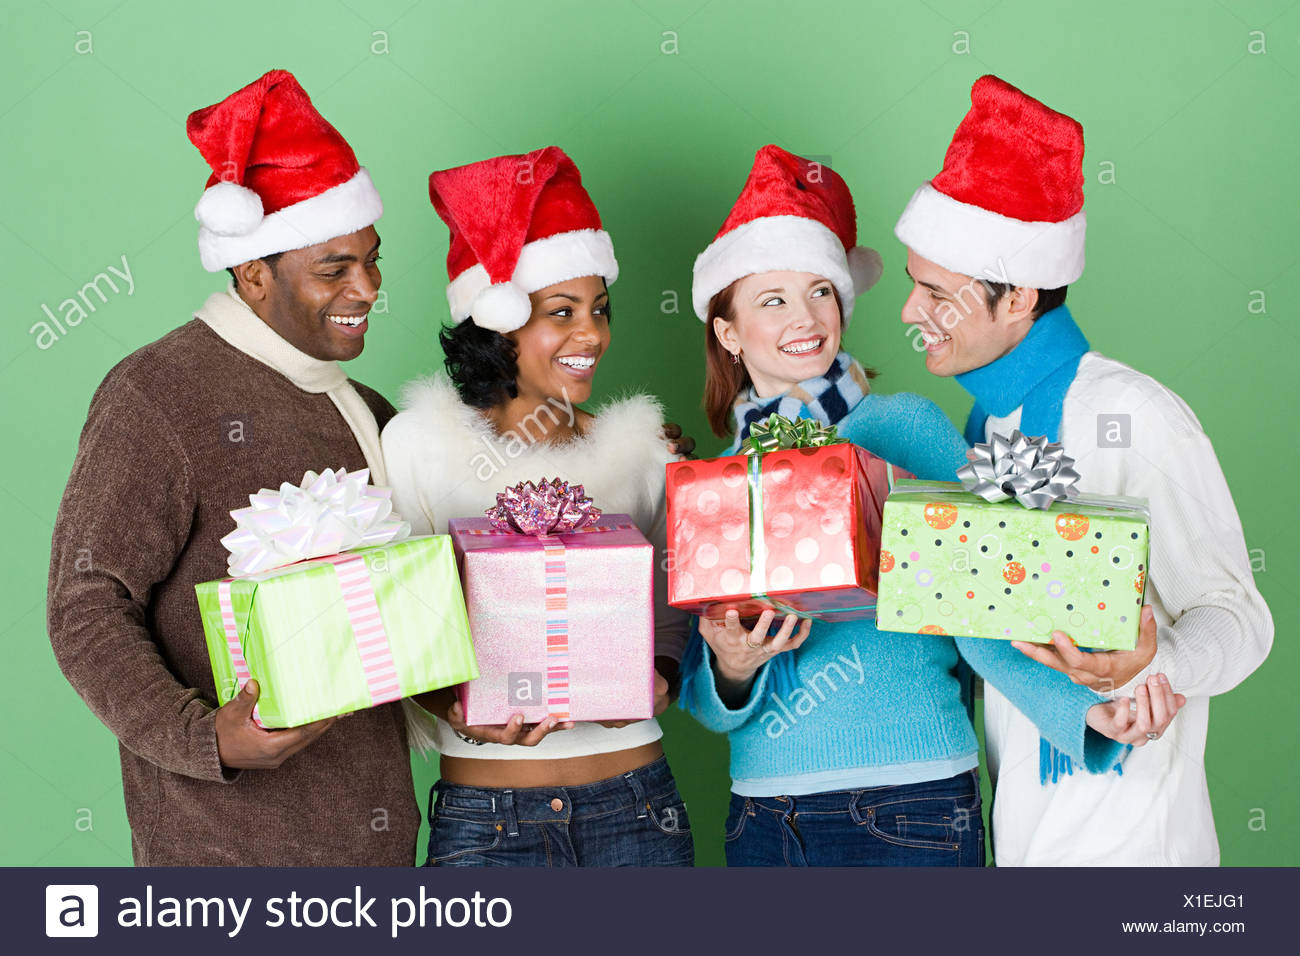 Group of friends with presents - Stock Image